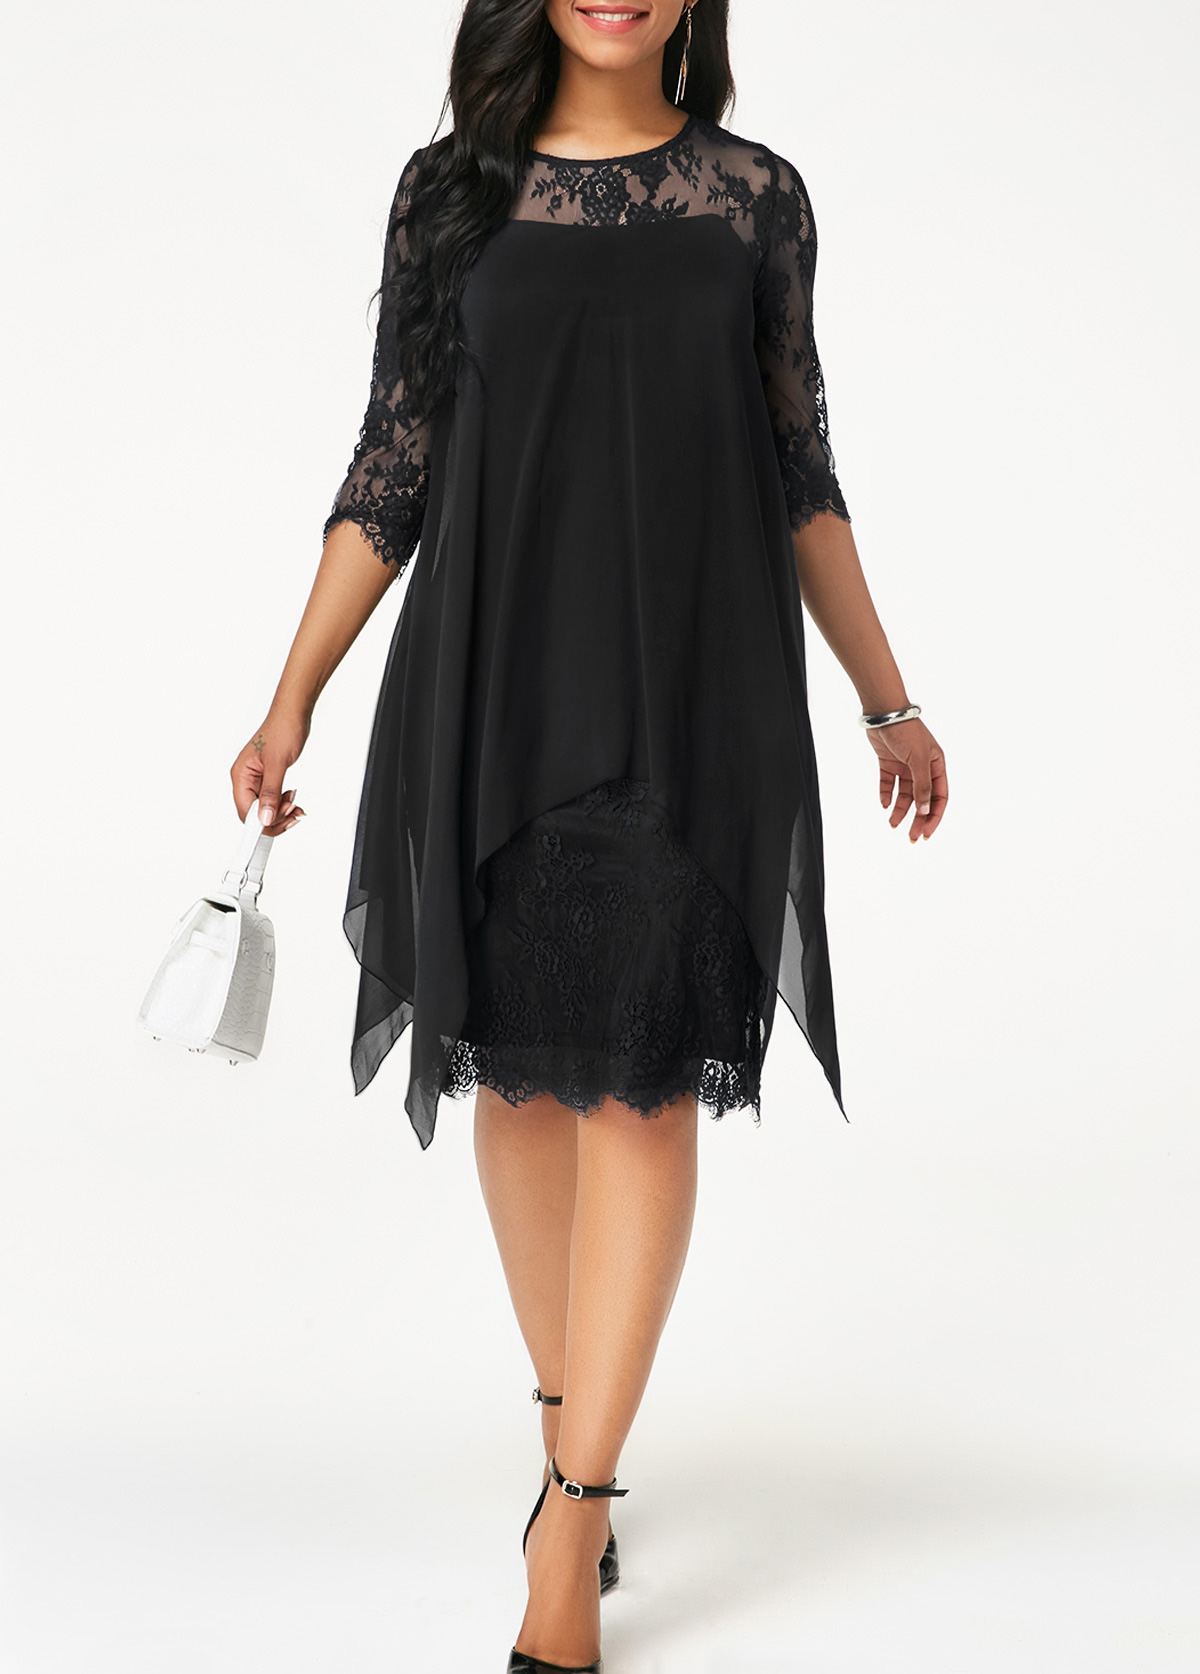 Chiffon Overlay Three Quarter Sleeve Black Lace Dress